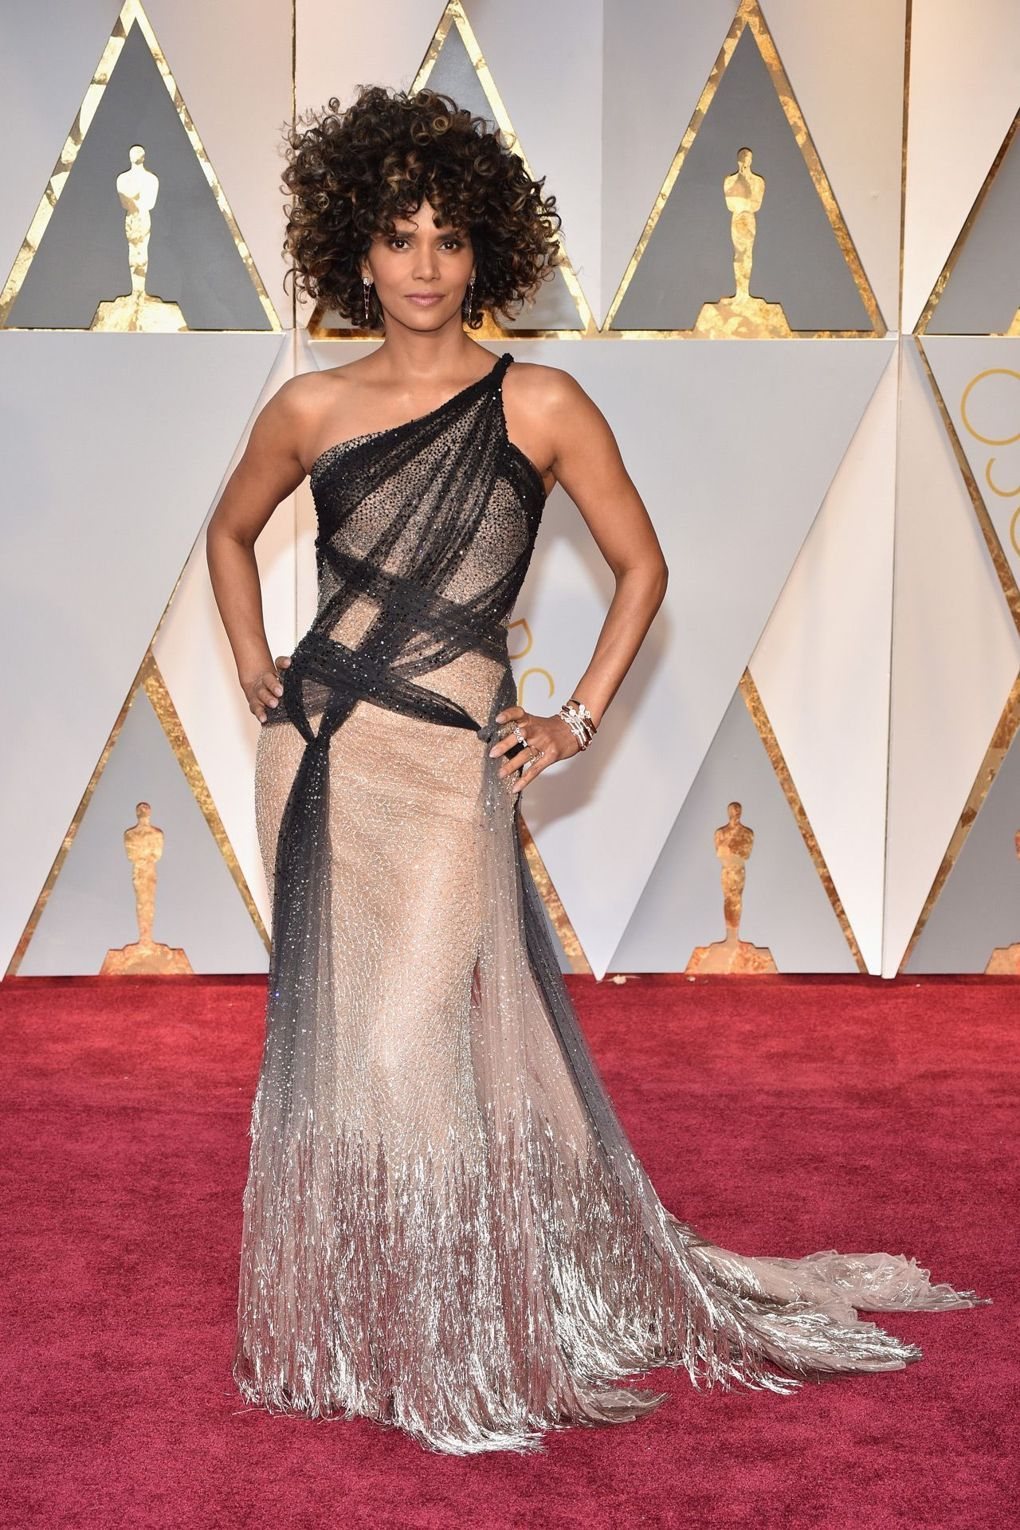 Halle Berry wasn't the only mega star harnessing the red carpet power of a shimmering dress last night. From full-look sequins, to glittering embellishment, the last word on Oscars 2017 style goes to the sparkling gown.